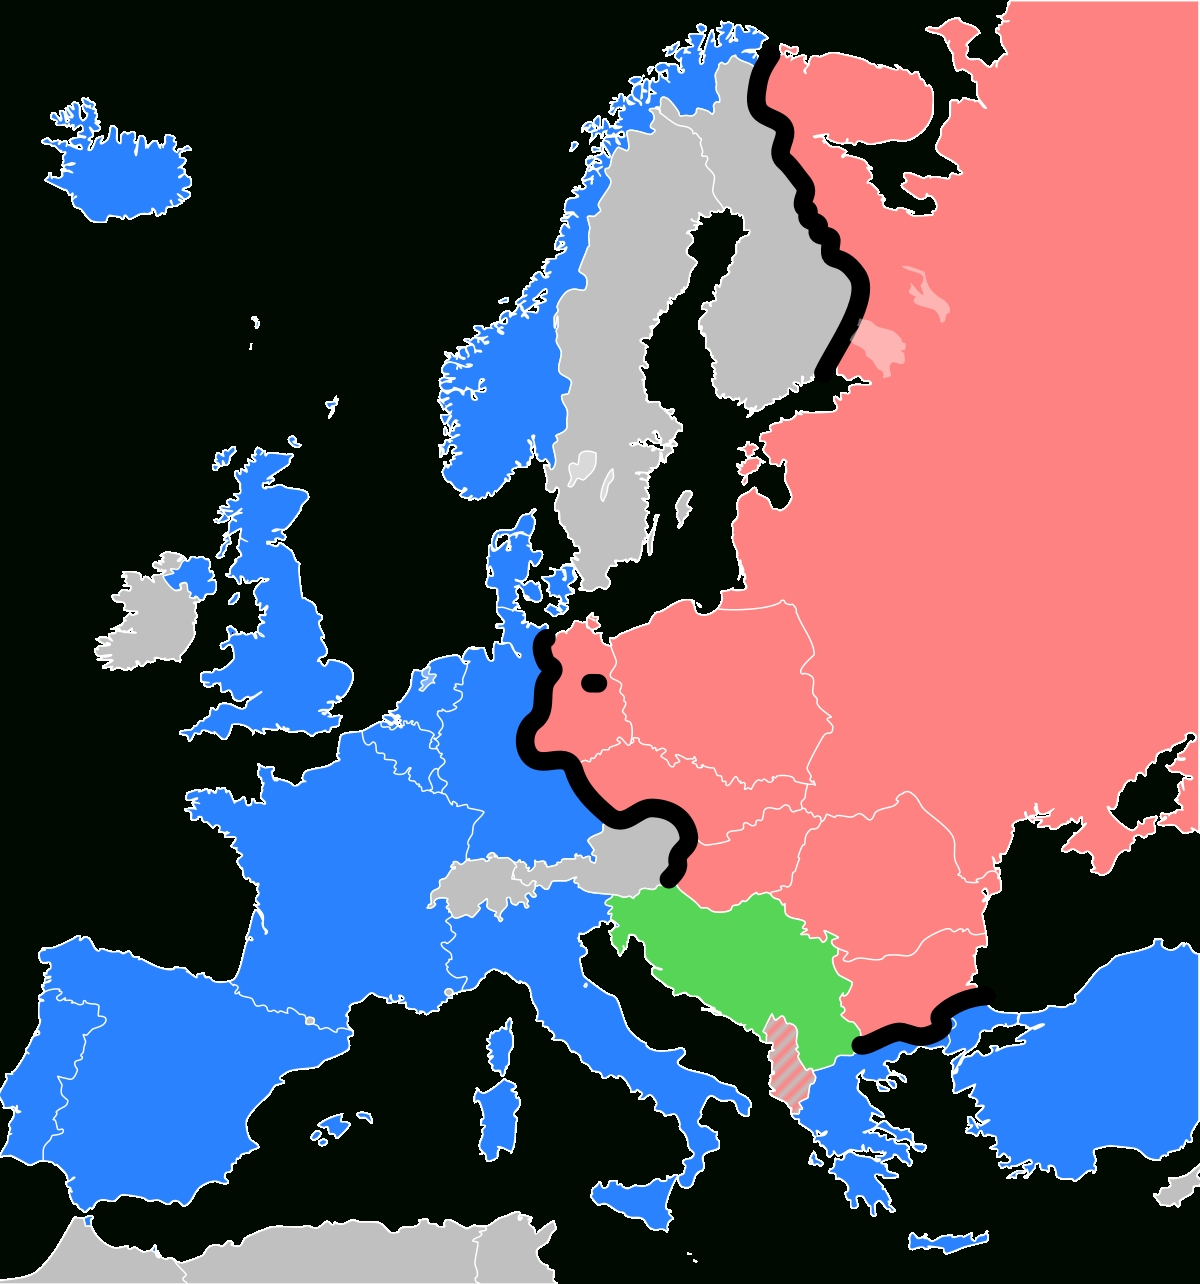 Iron Curtain - Wikipedia throughout 67 Germany Divided Map